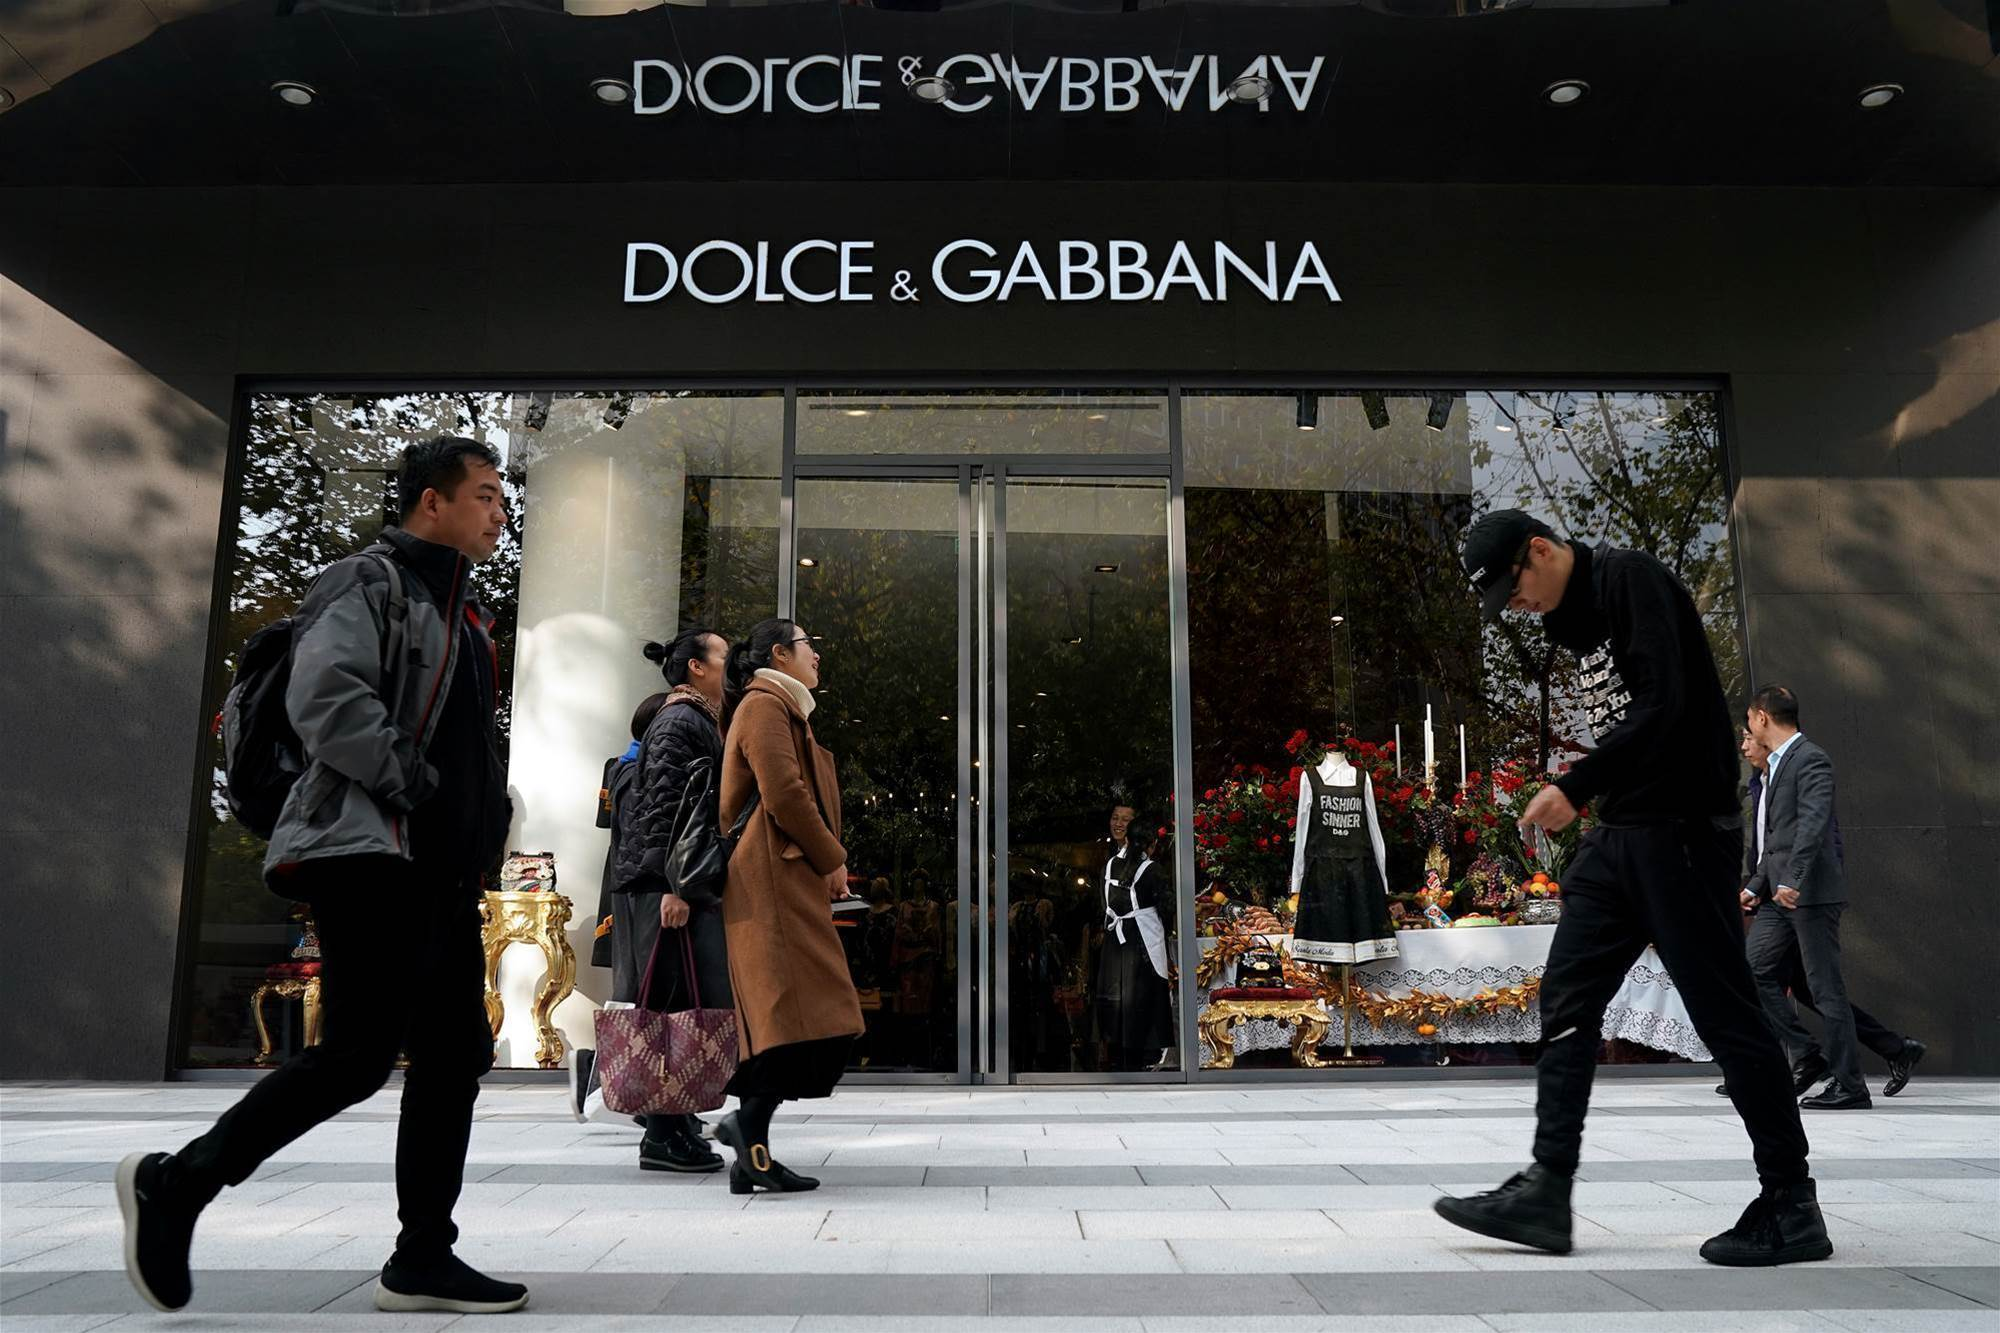 Chinese online shopping sites ditch Dolce & Gabbana in ad backlash